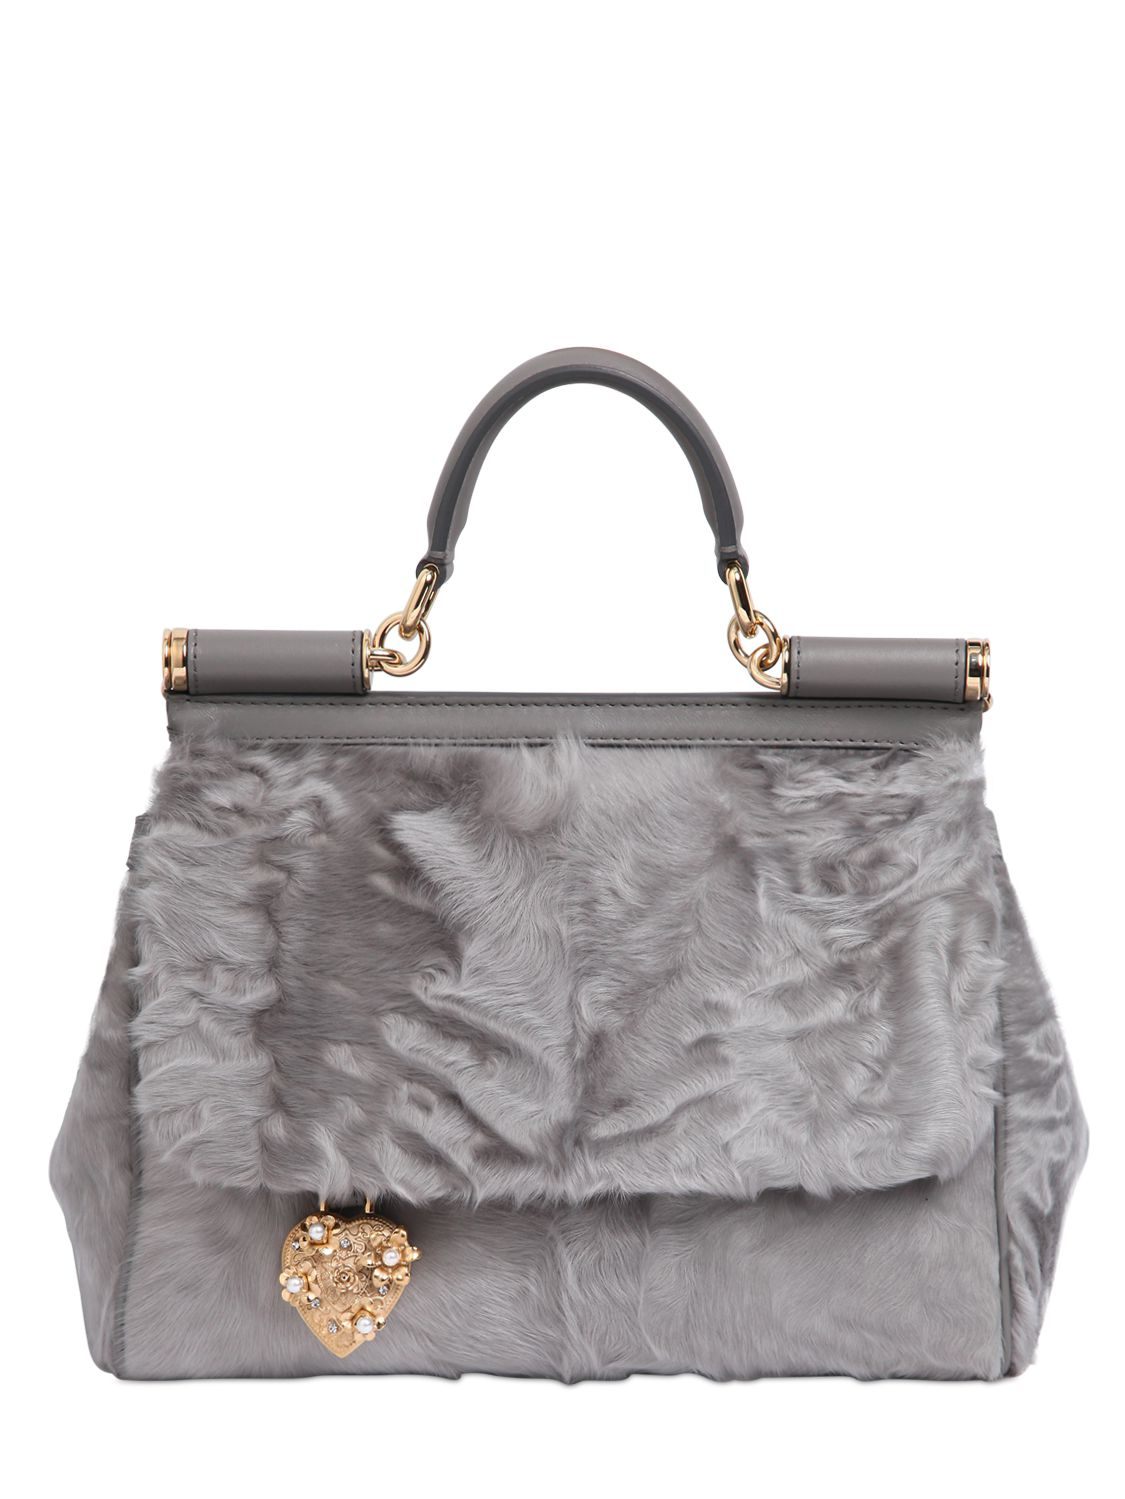 1b75f1d7cc Lyst - Dolce   Gabbana Mamma Xiangao Fur Top Handle Bag in Gray